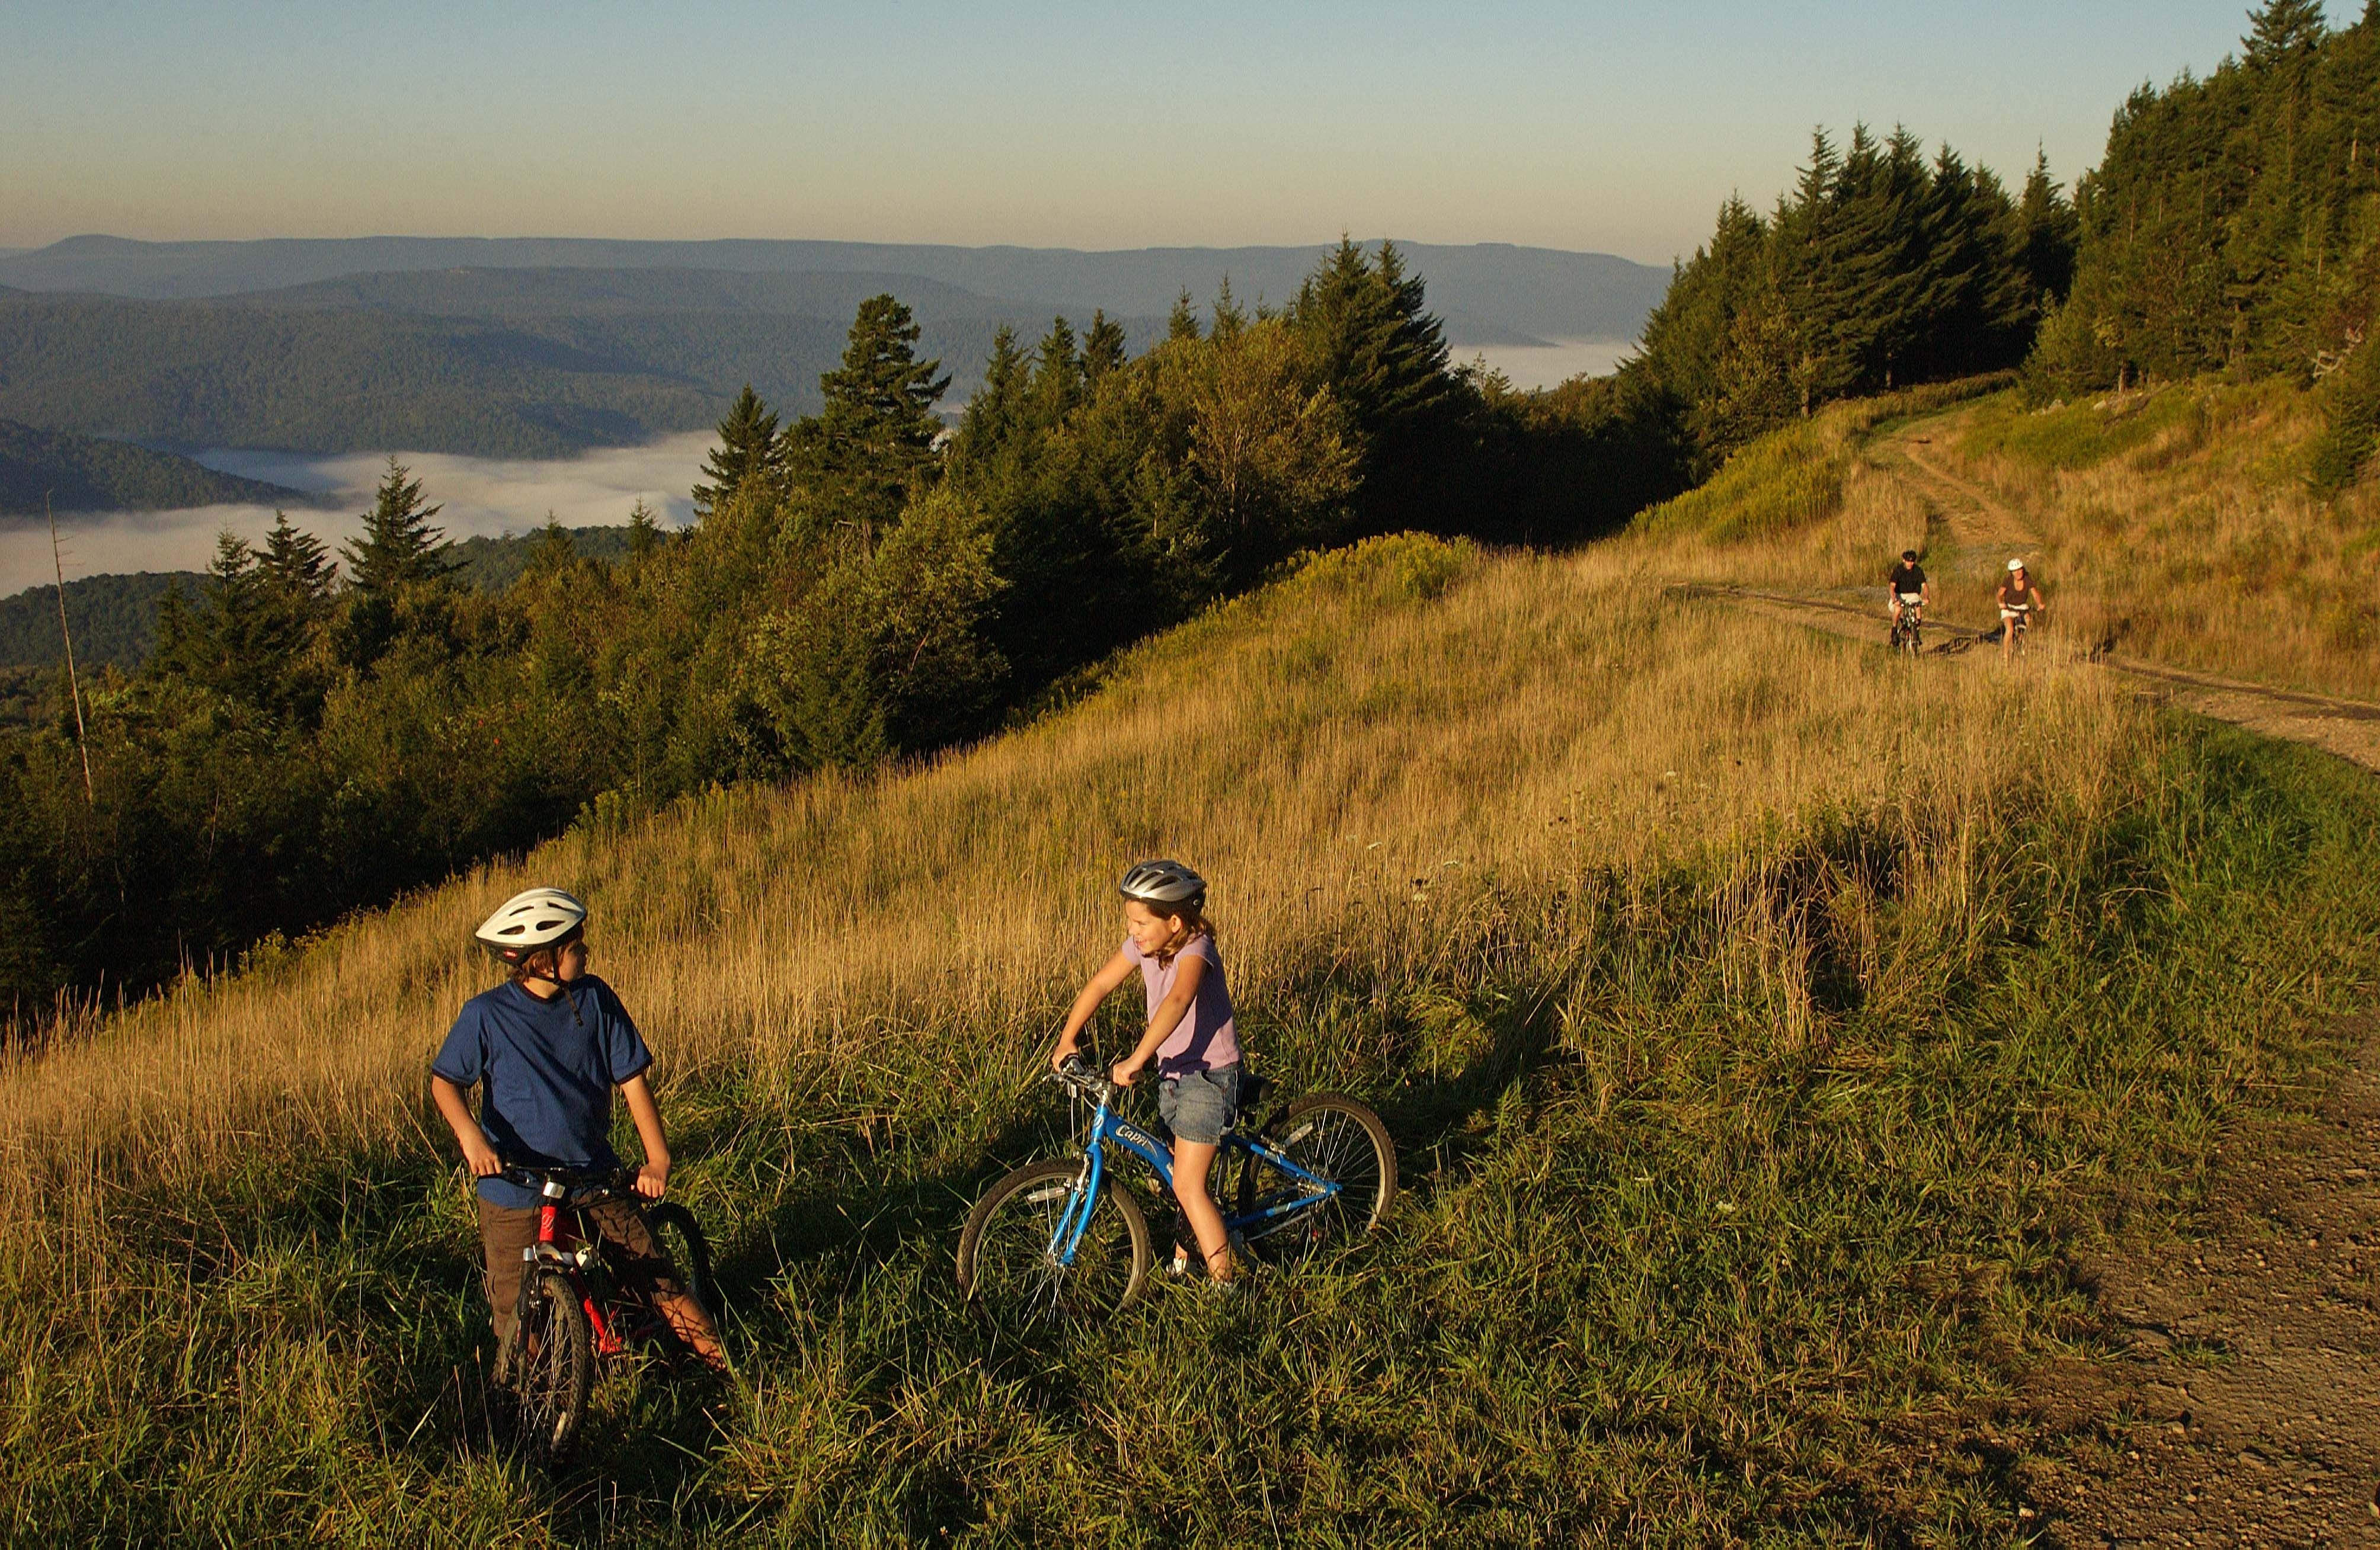 Bring your bike and pick a path - Mountain Bike the Wild & Wonderful way ##GoToWV